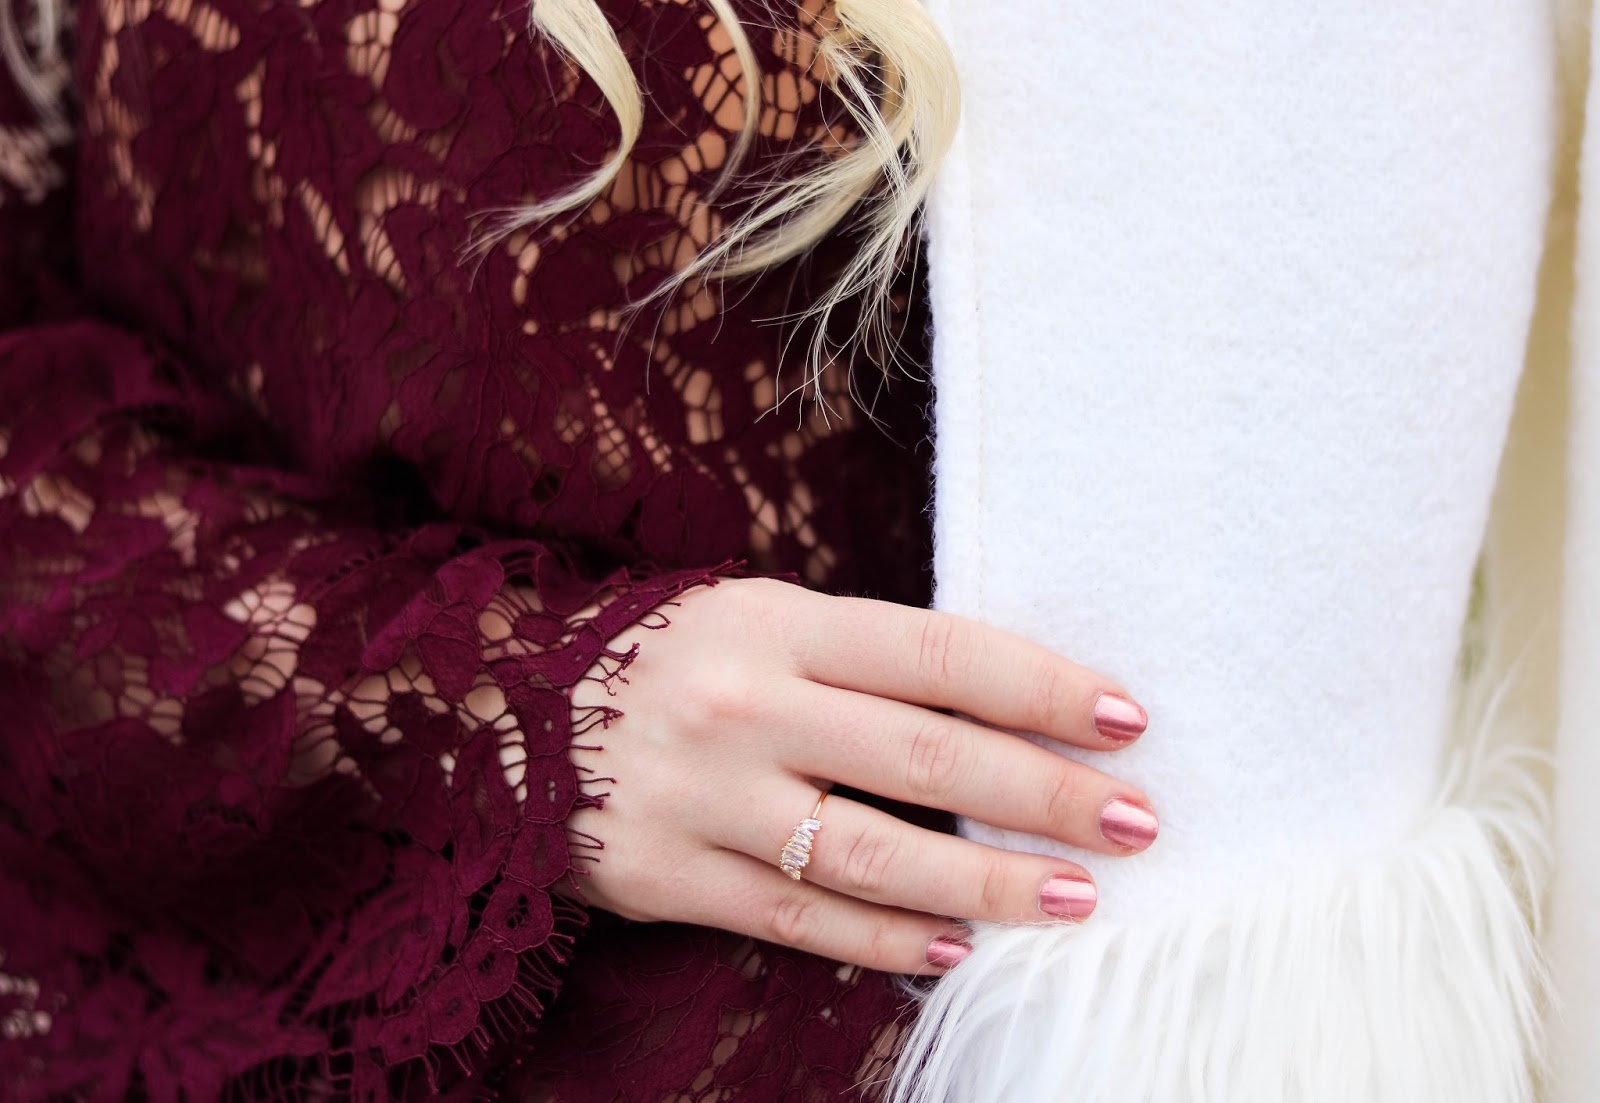 Elizabeth Hugen of Lizzie in Lace wears a gold gorjana ring